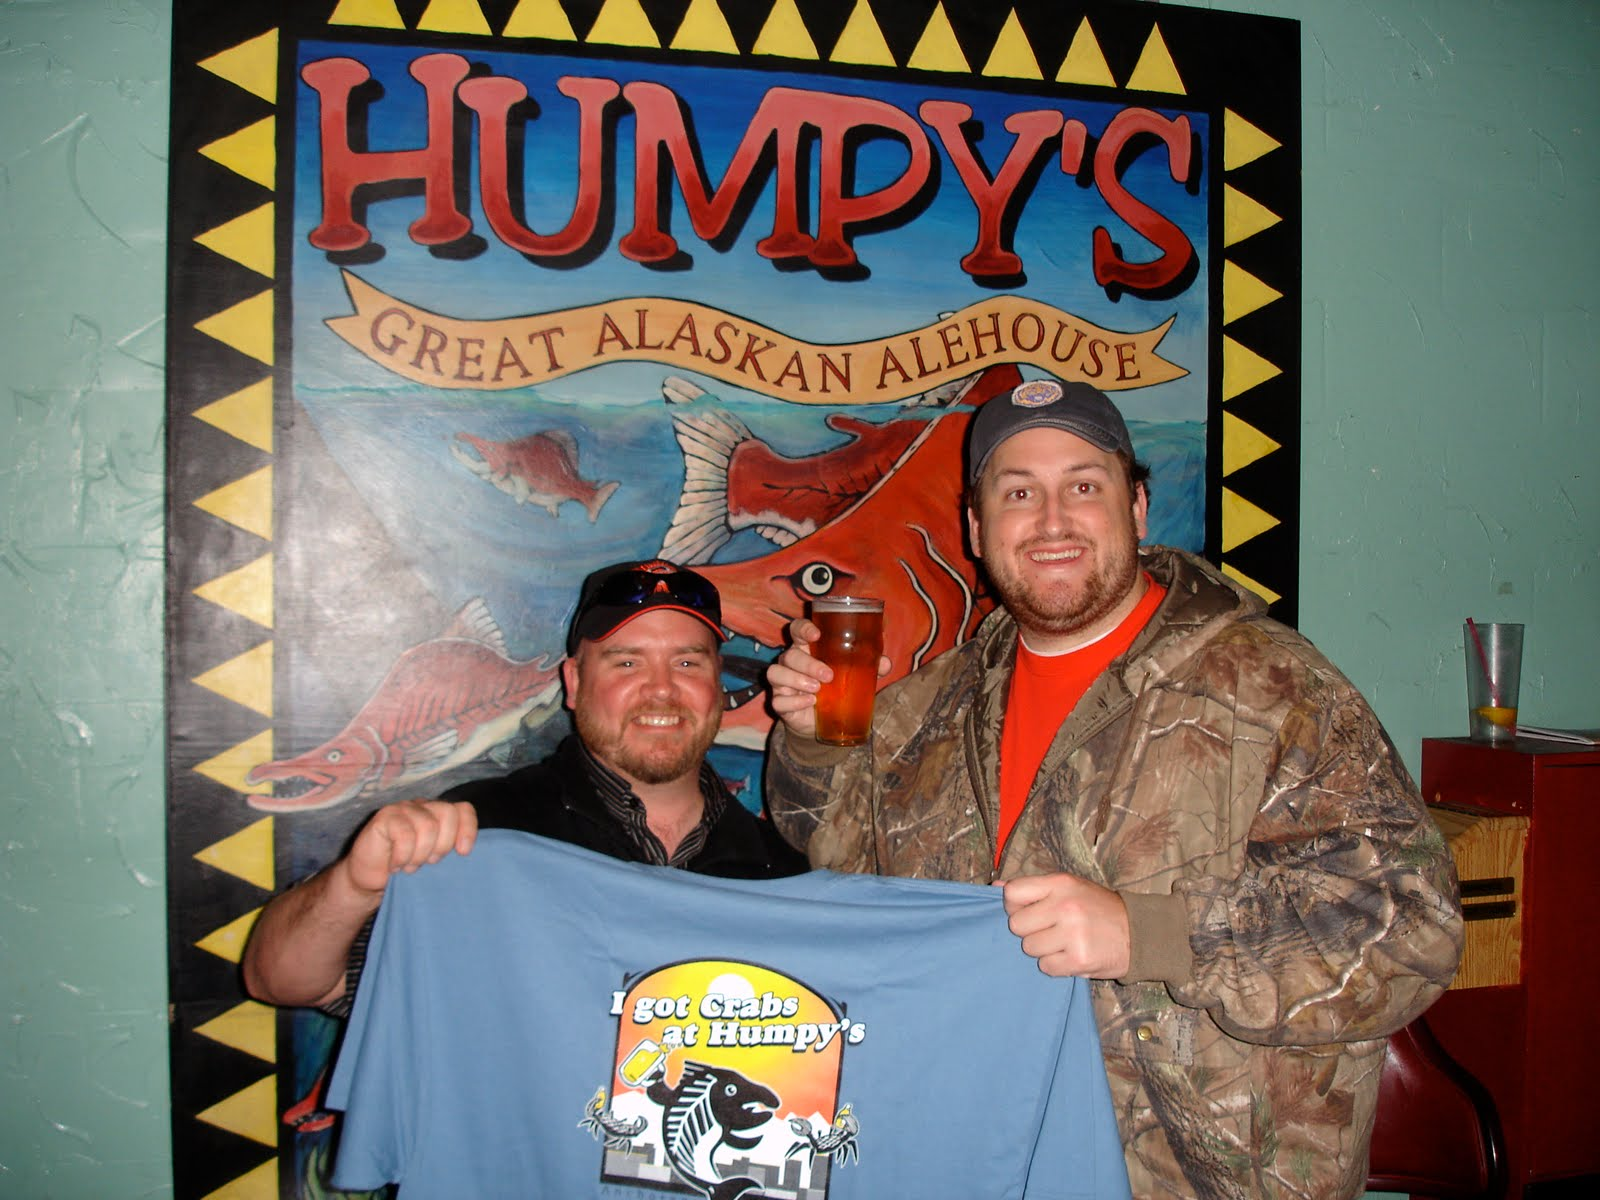 Jay poses with Shawn for a victory beer and tshirt after completing the kodiak arrest challenge at humpys great alaskan ale house